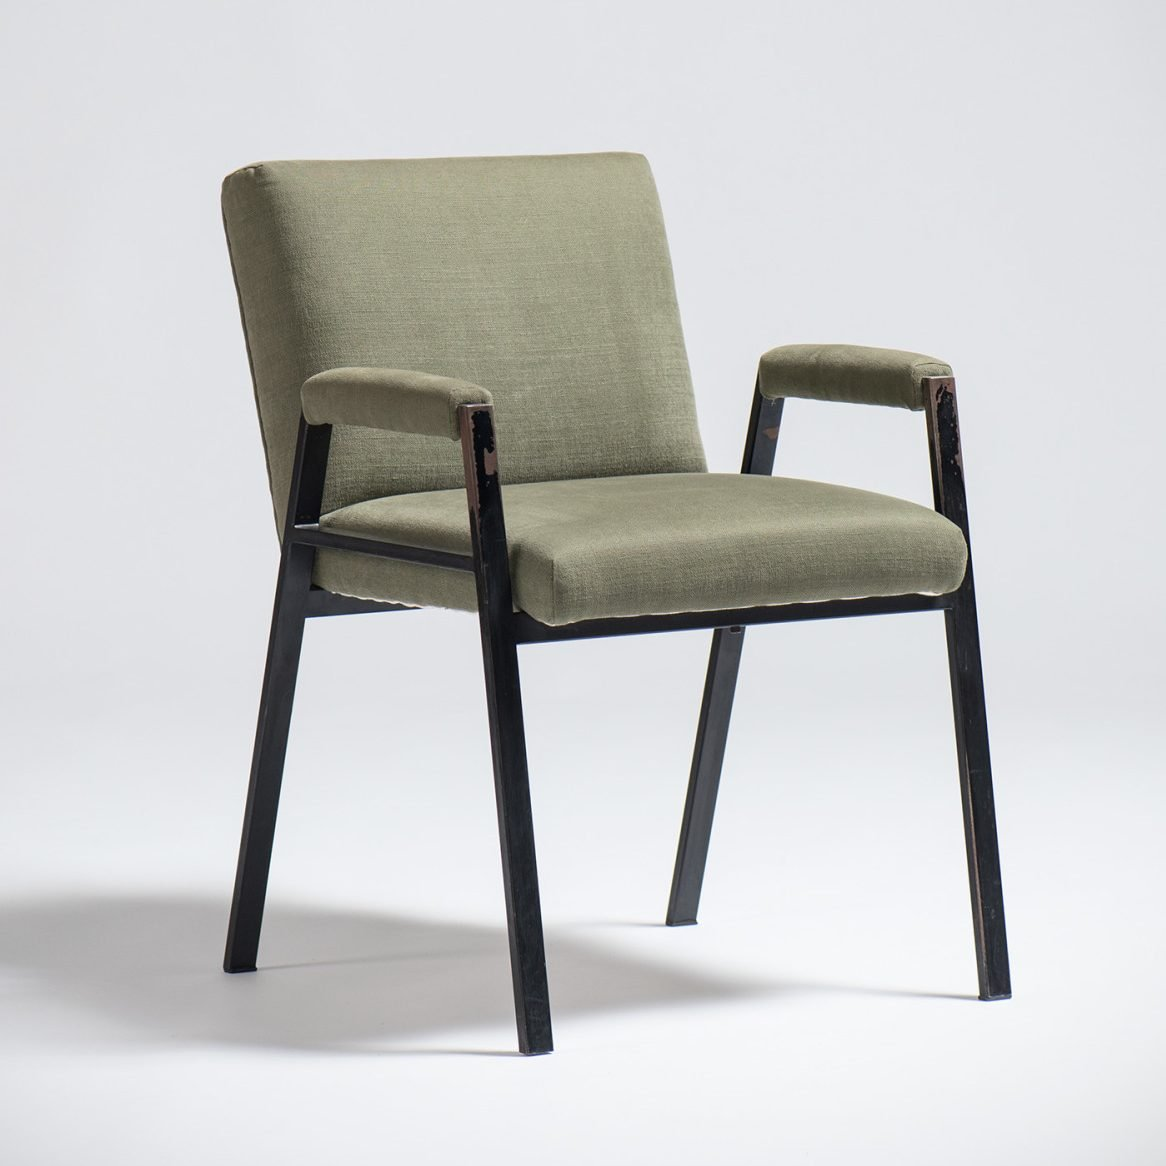 Achille Castiglioni |                                  Babela - chair